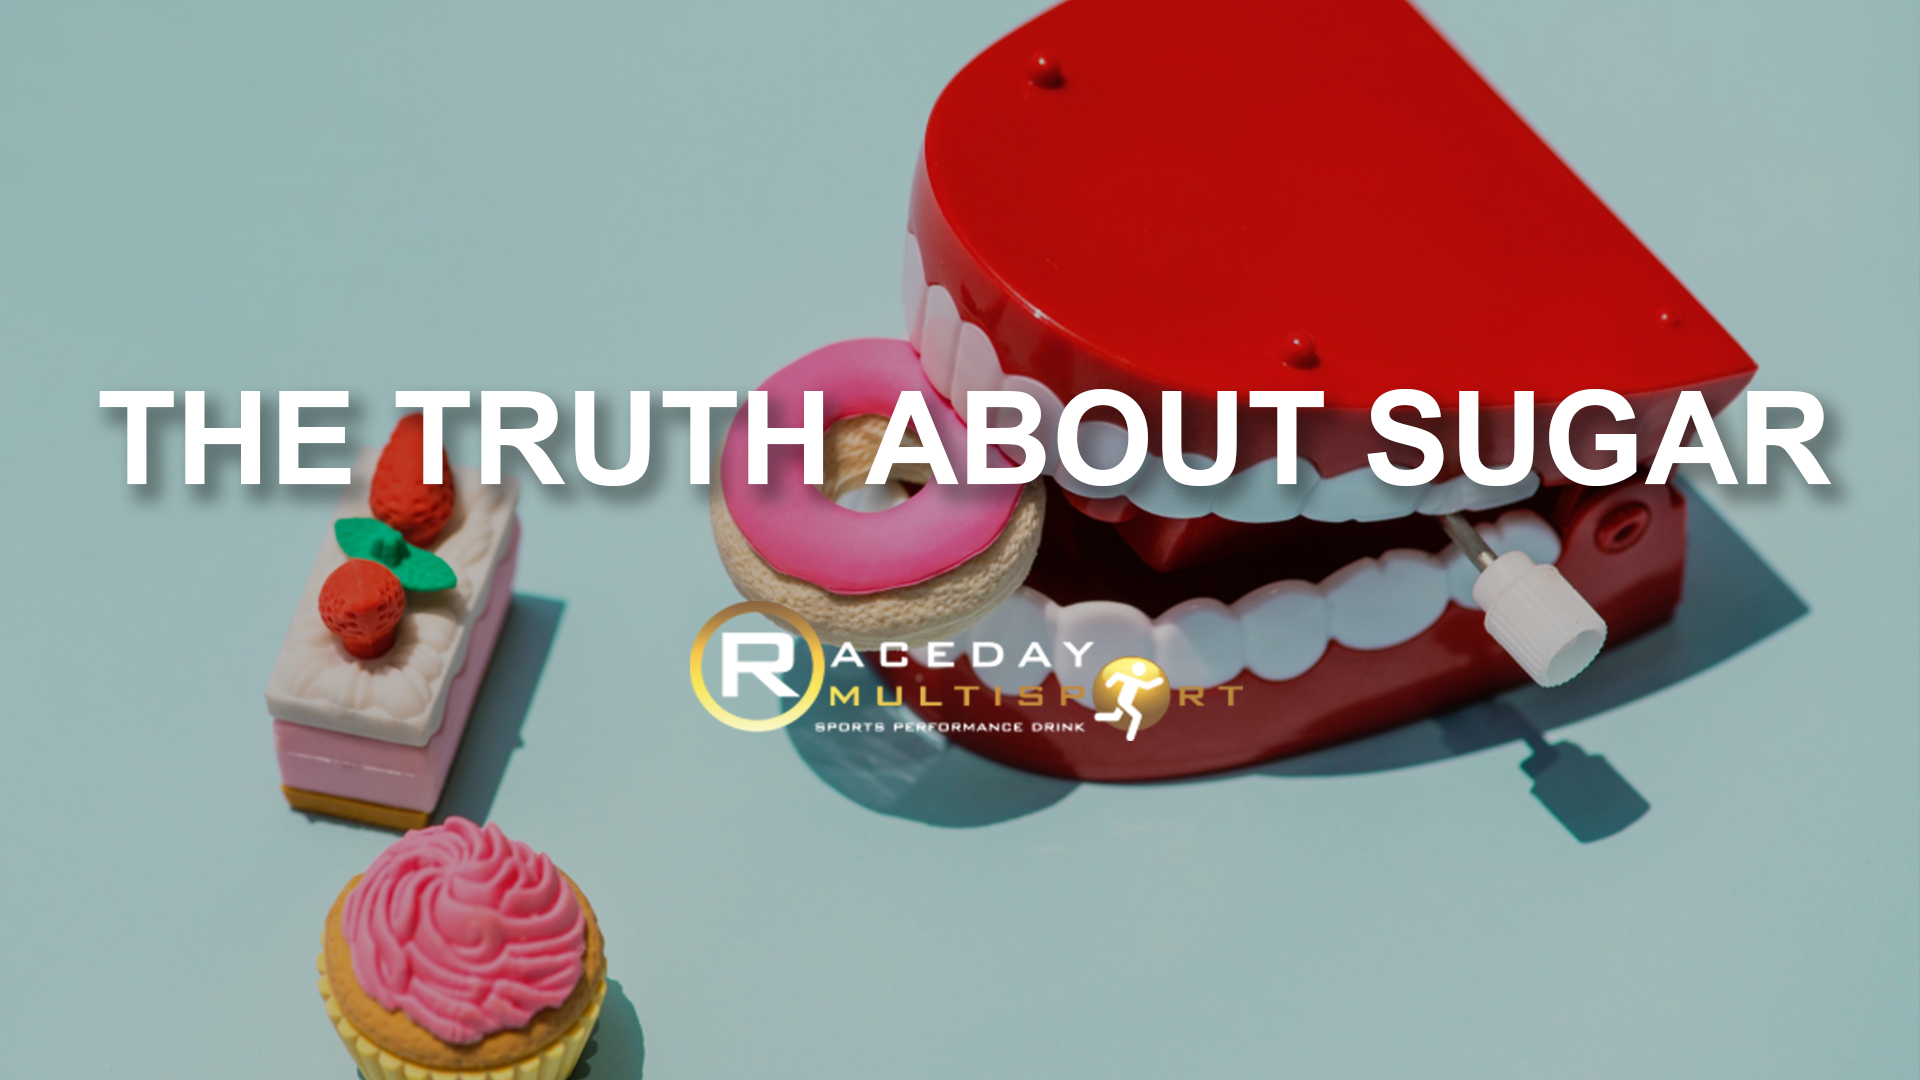 The truth about sugar's effect on your body.